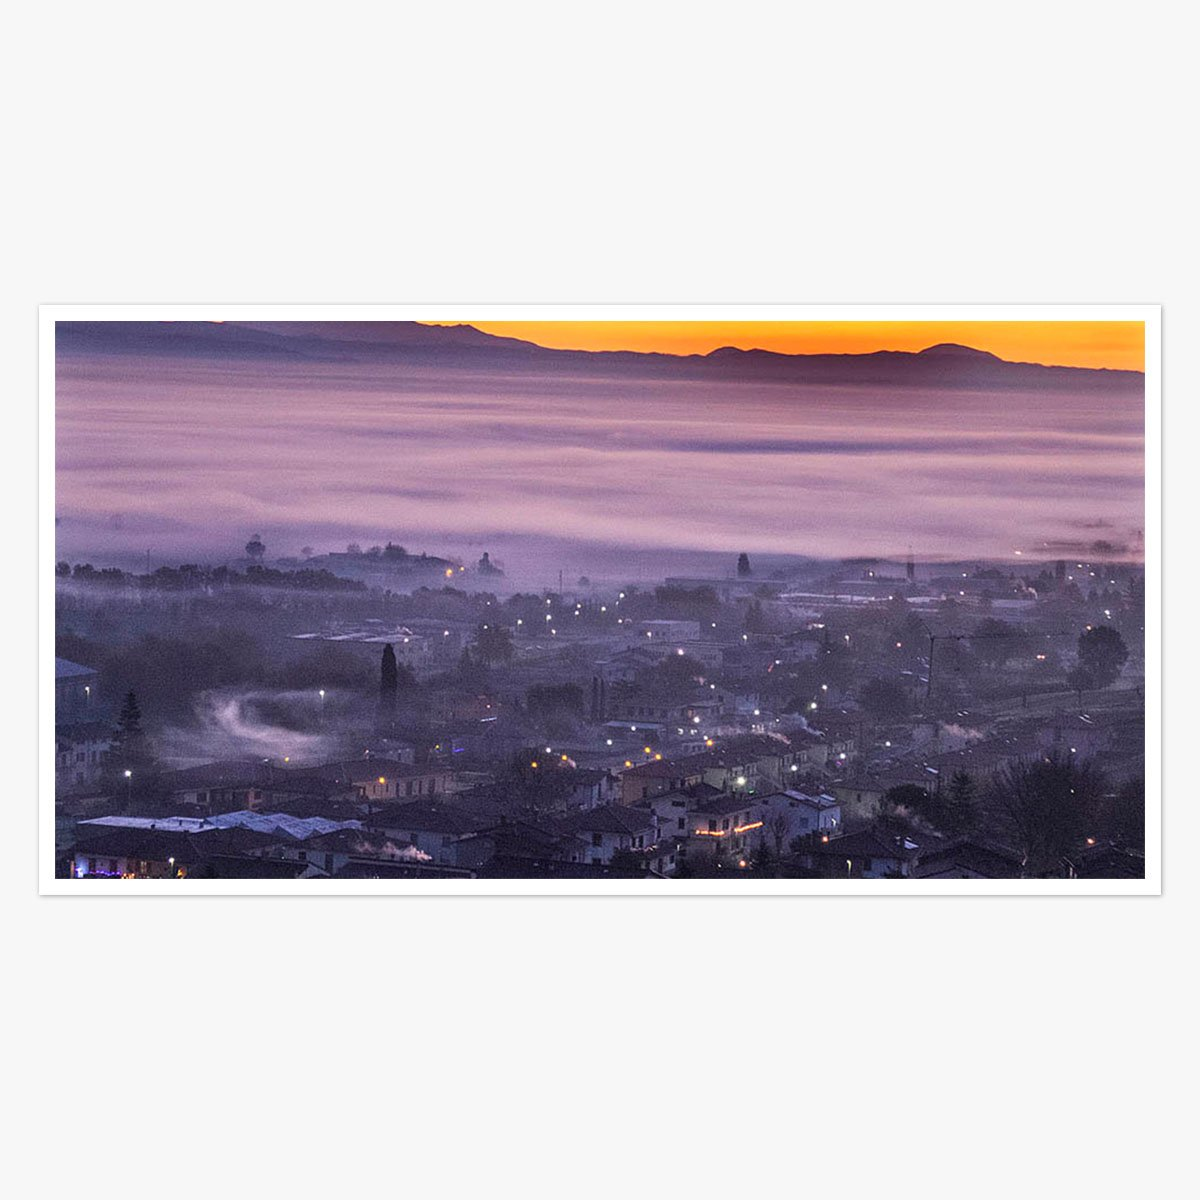 Dawn rises in Anghiari,Tuscany by Roger Taylor